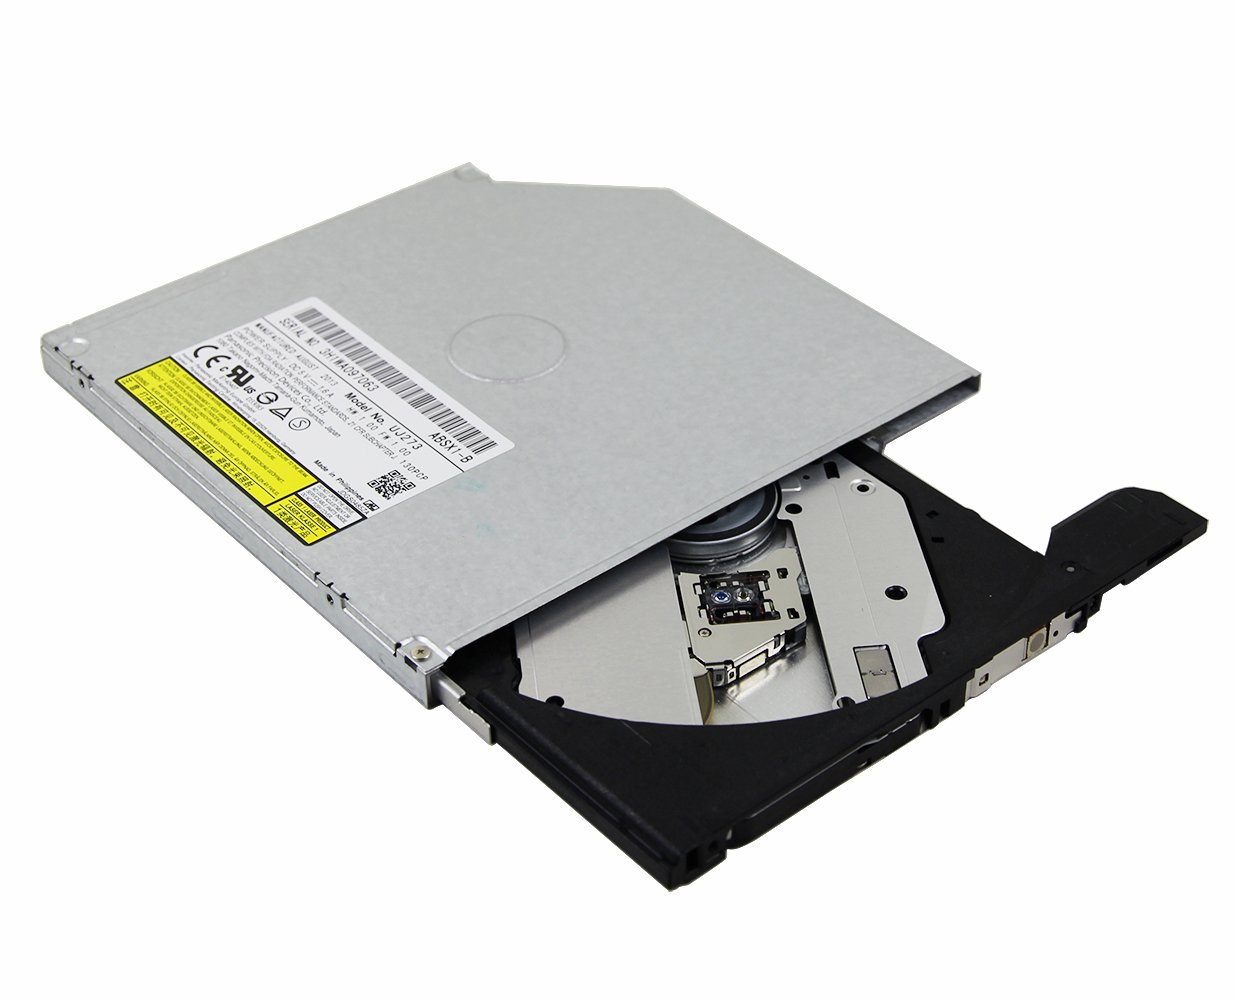 New Genuine for Matshita BD-MLT UJ273 UJ272Q Panasonic UJ-273 BD-RE DL 6X BD-R 3D Blu-ray Burner 4X BDXL 100GB Bluray DVD Writer Laptop Internal 9.0mm Slim SATA Optical Drive